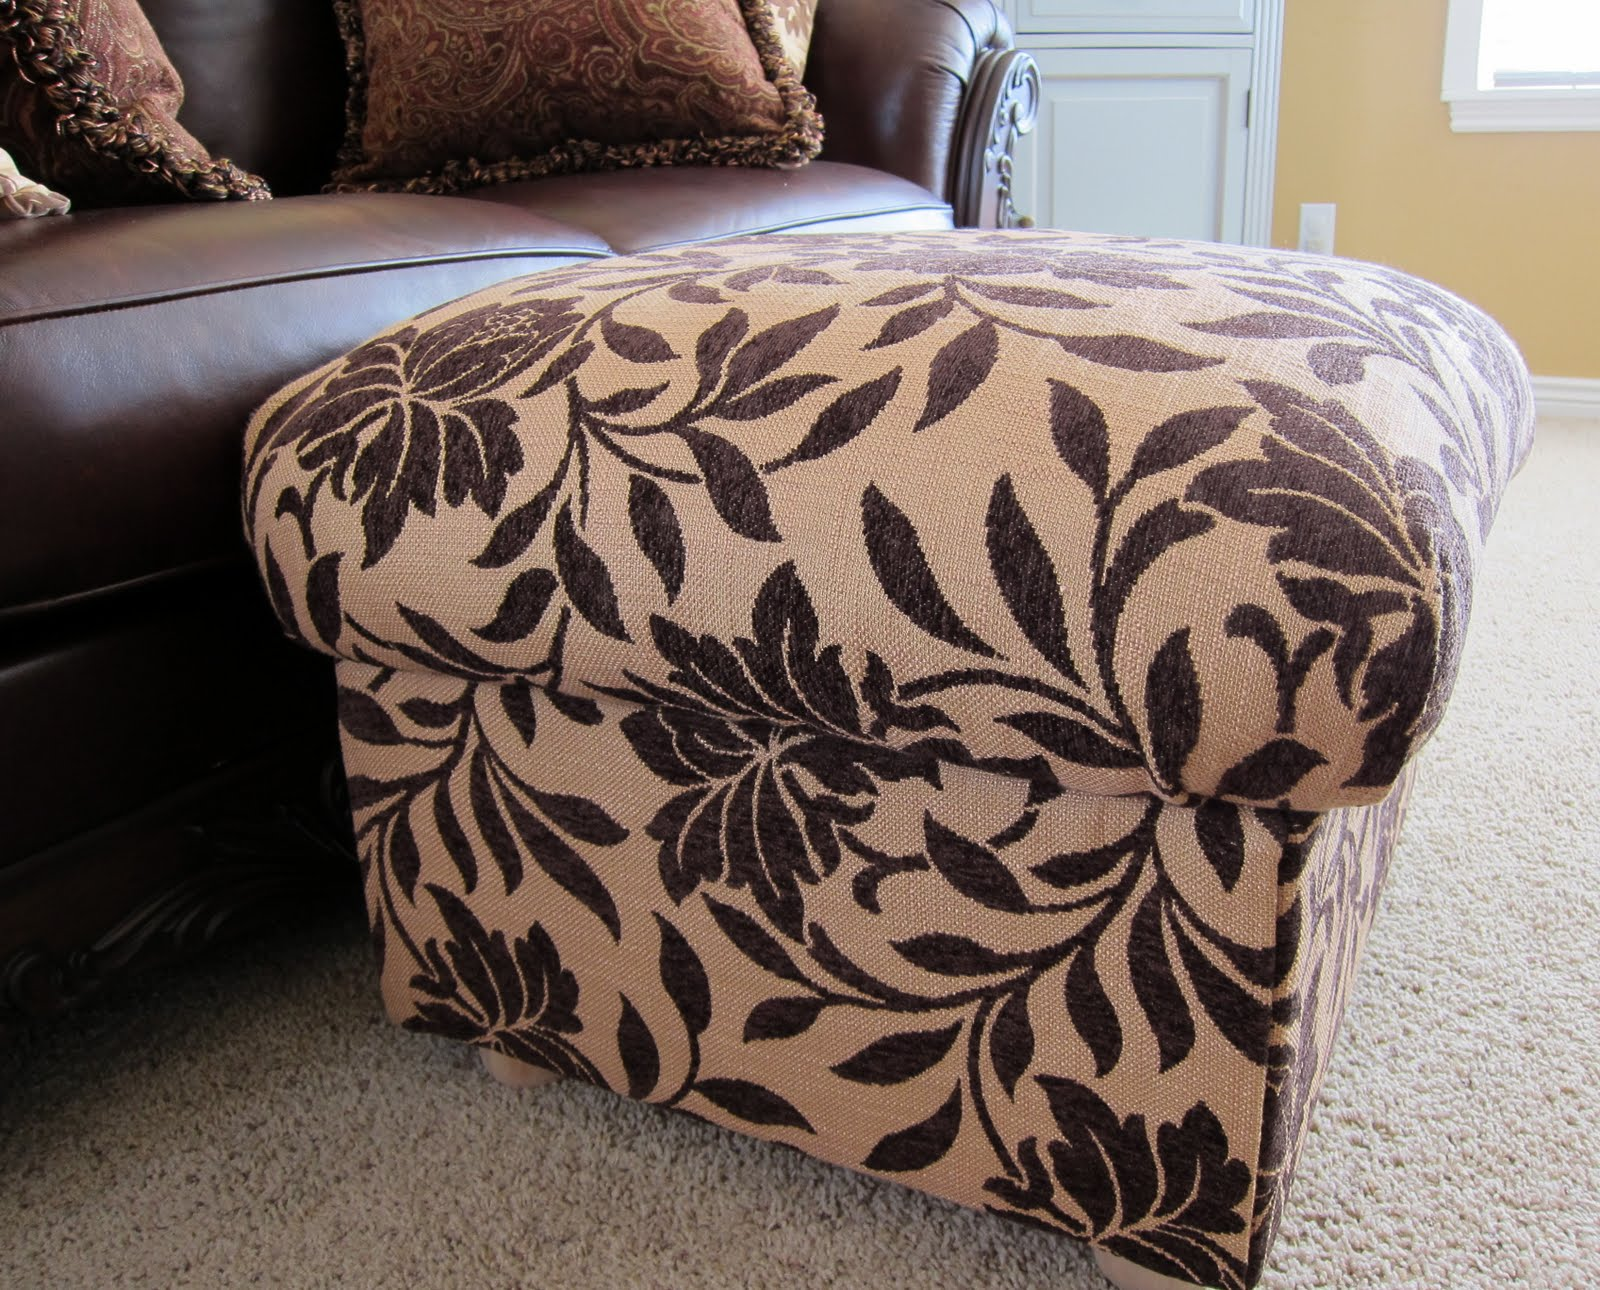 Do it yourself divas diy ottoman build your own from scratch solutioingenieria Images